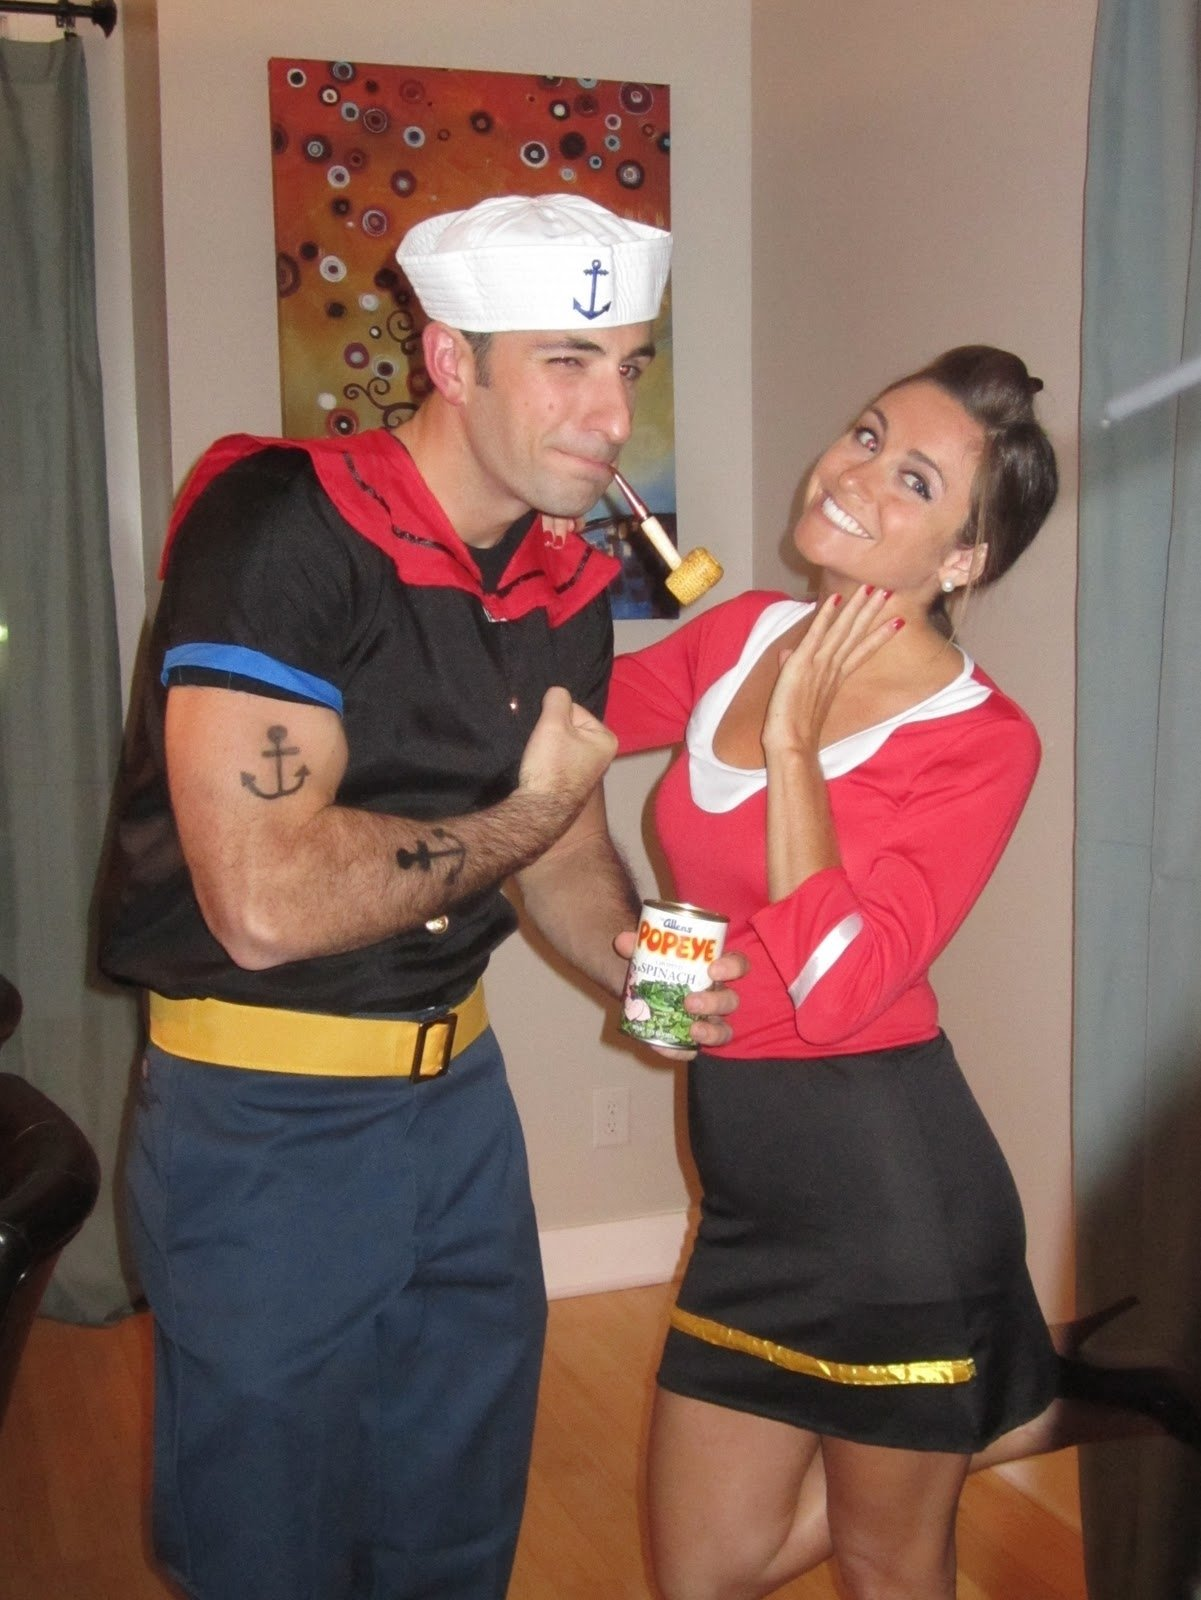 10 Stylish Good Costume Ideas For Couples 25 genius diy couples costumes brit co 14 2020